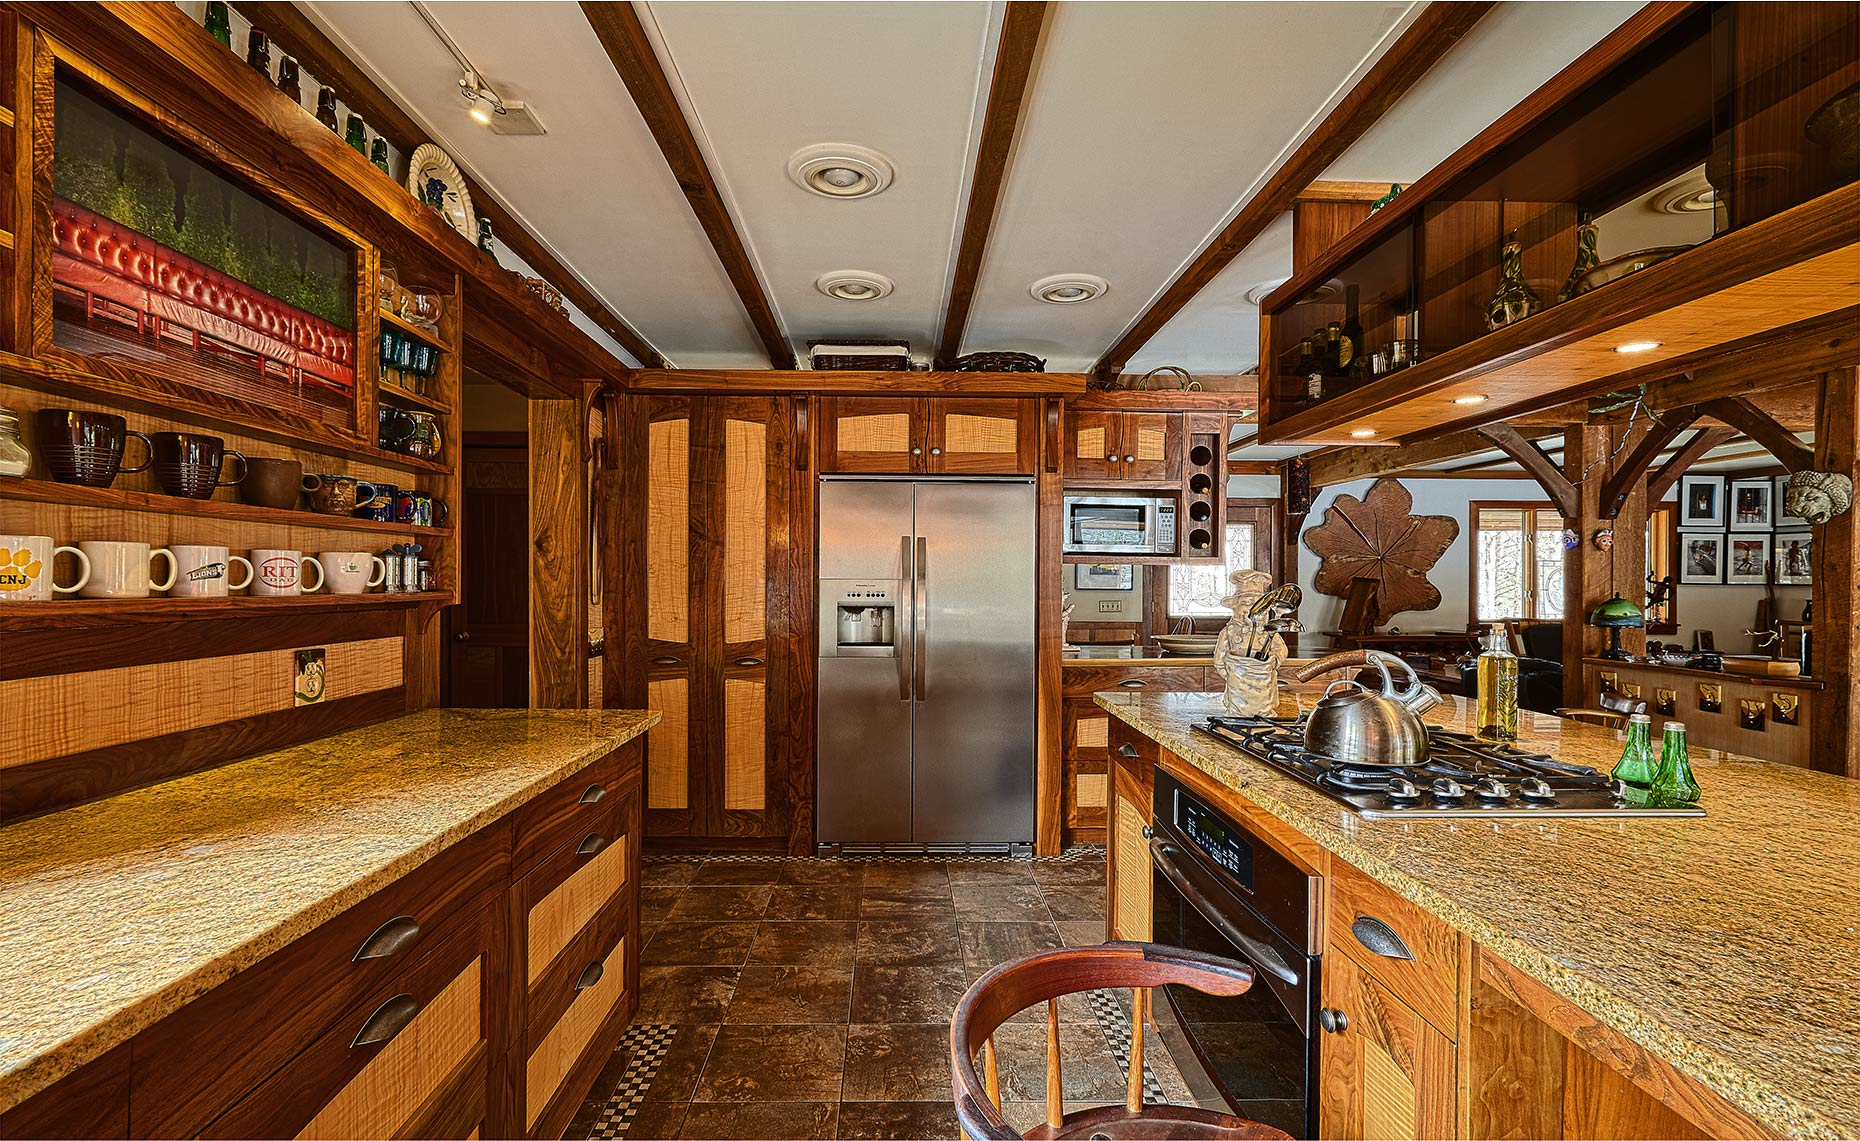 custom kitchen cabinets- mercer county, nj-by birdie miller-Country Walnut and Figured Maple